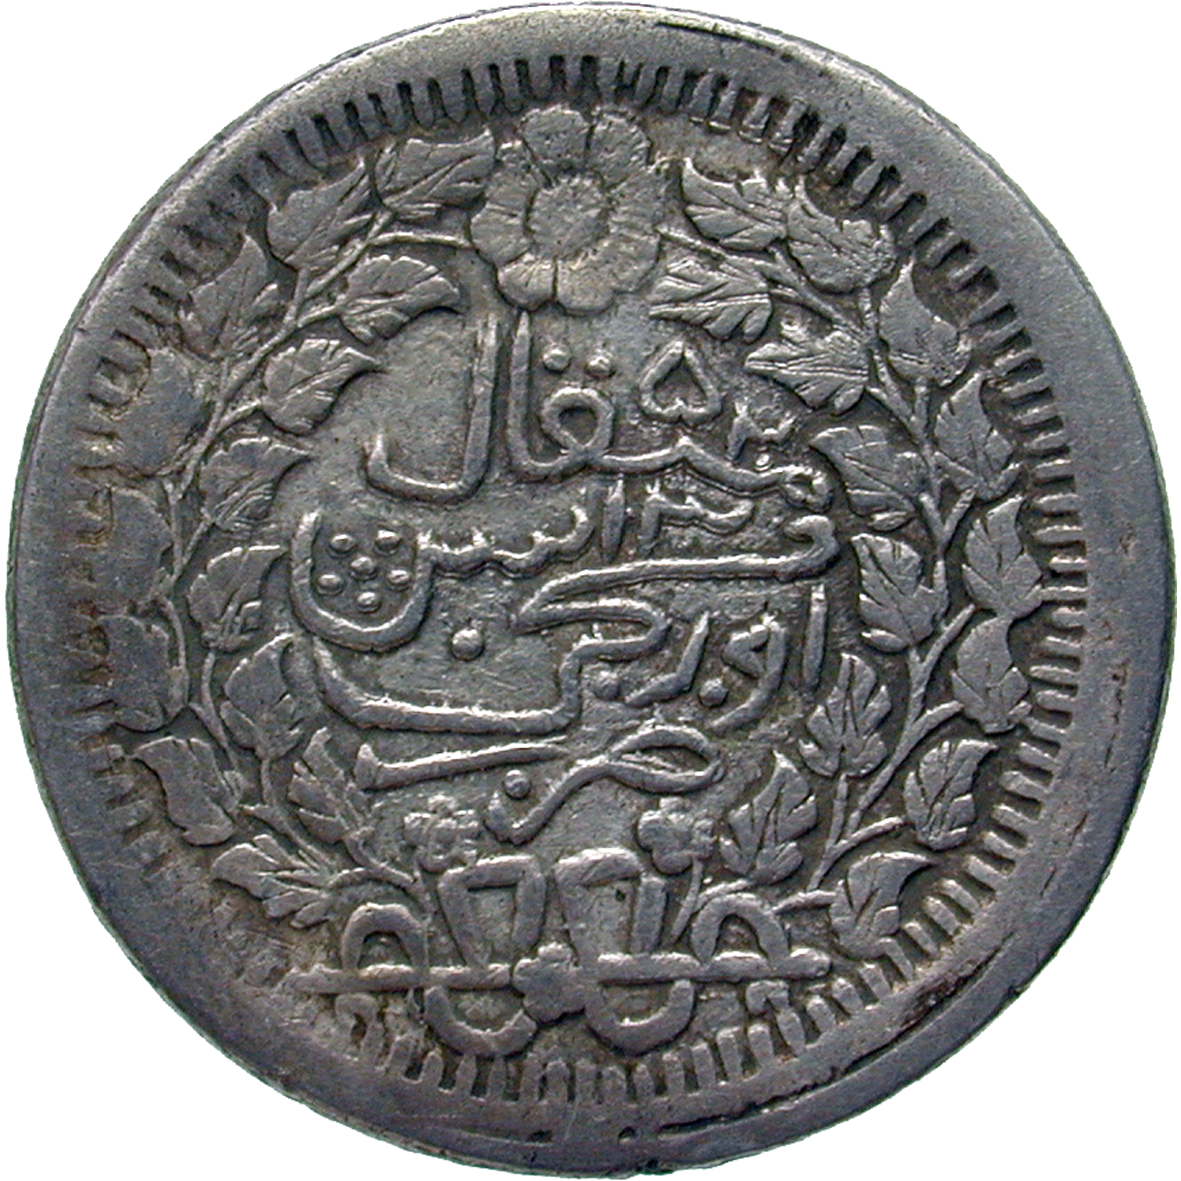 Republic of China, Province of Xinjiang, 5 Miscals, 1325 Hijrah (reverse)